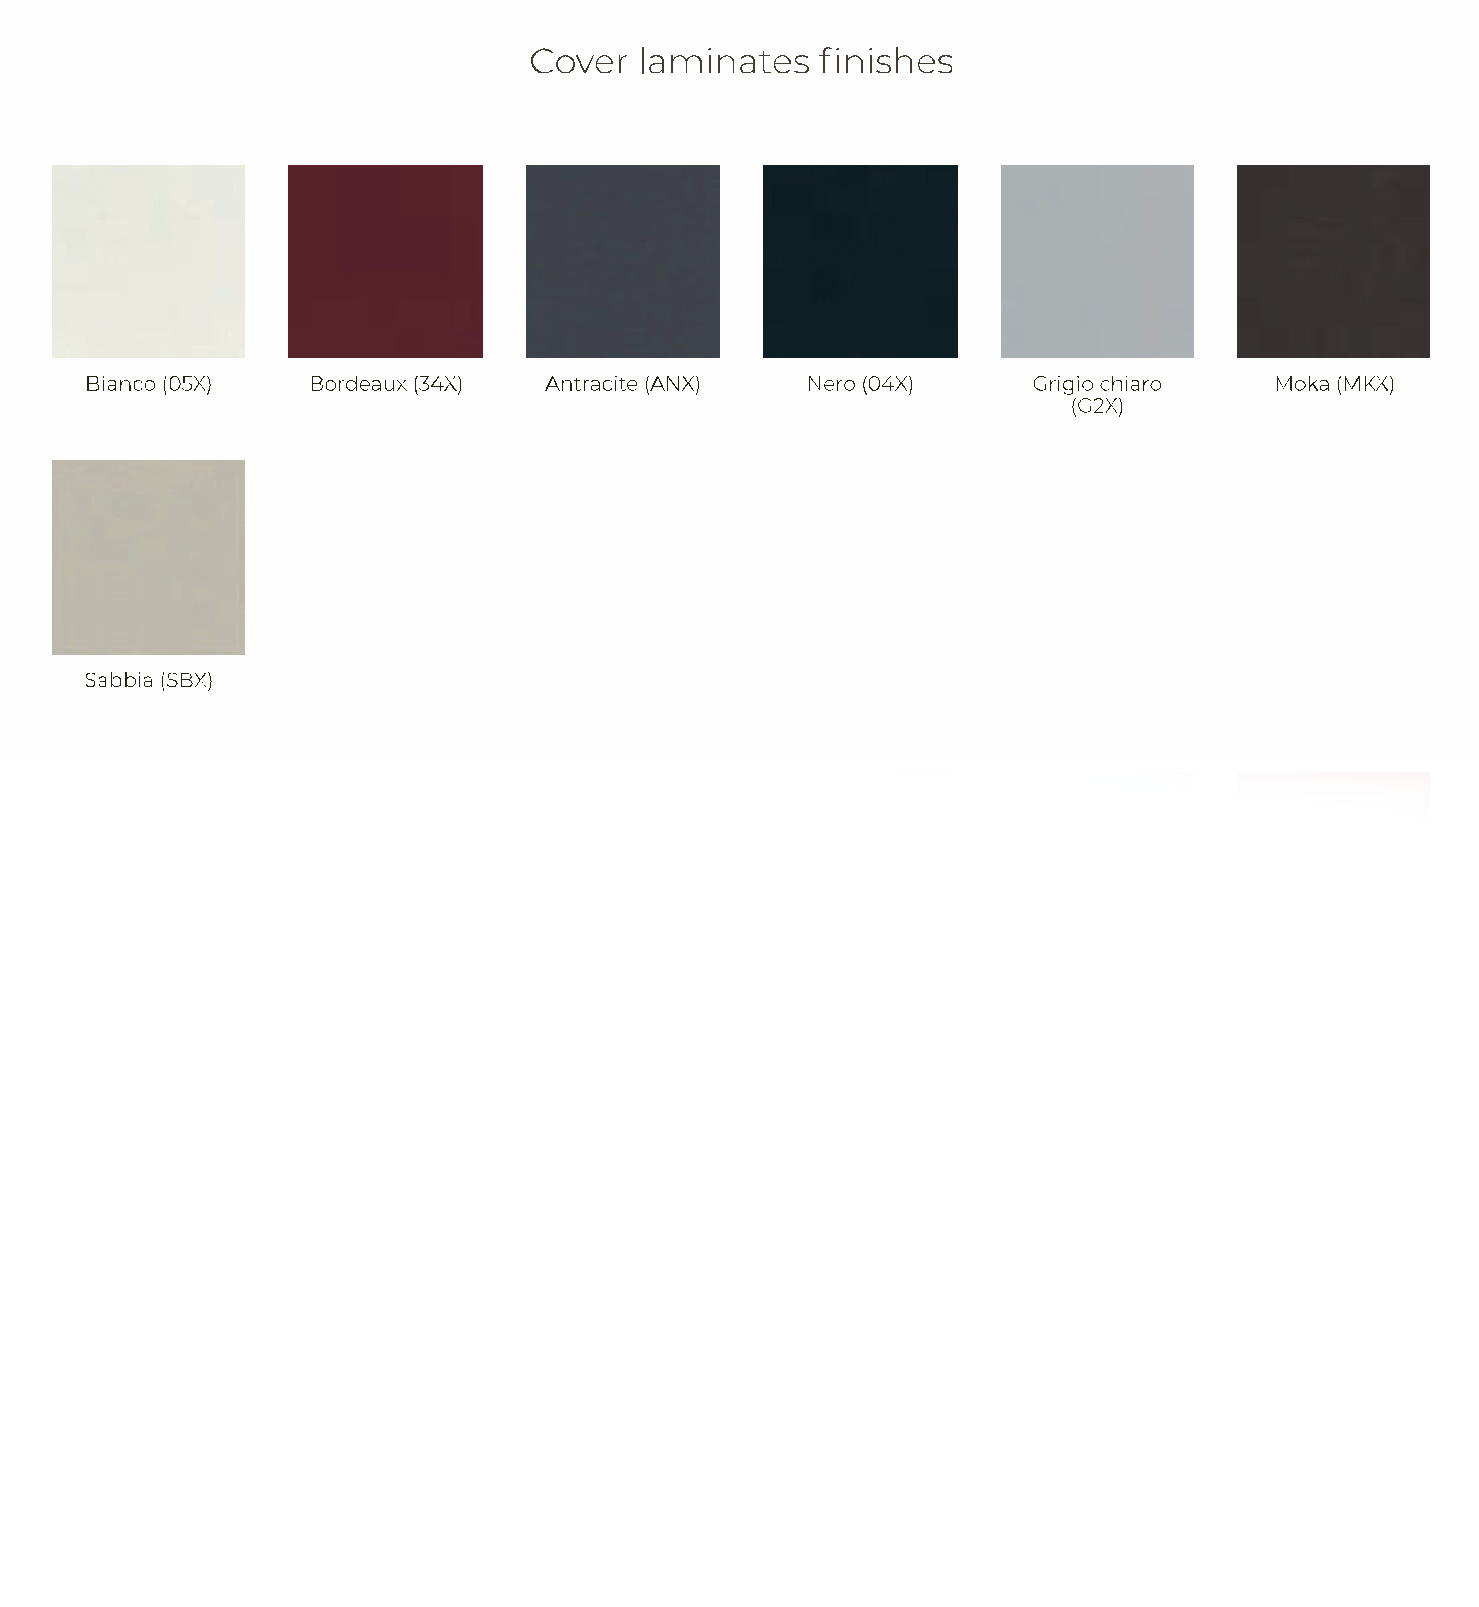 Cover laminates finishes